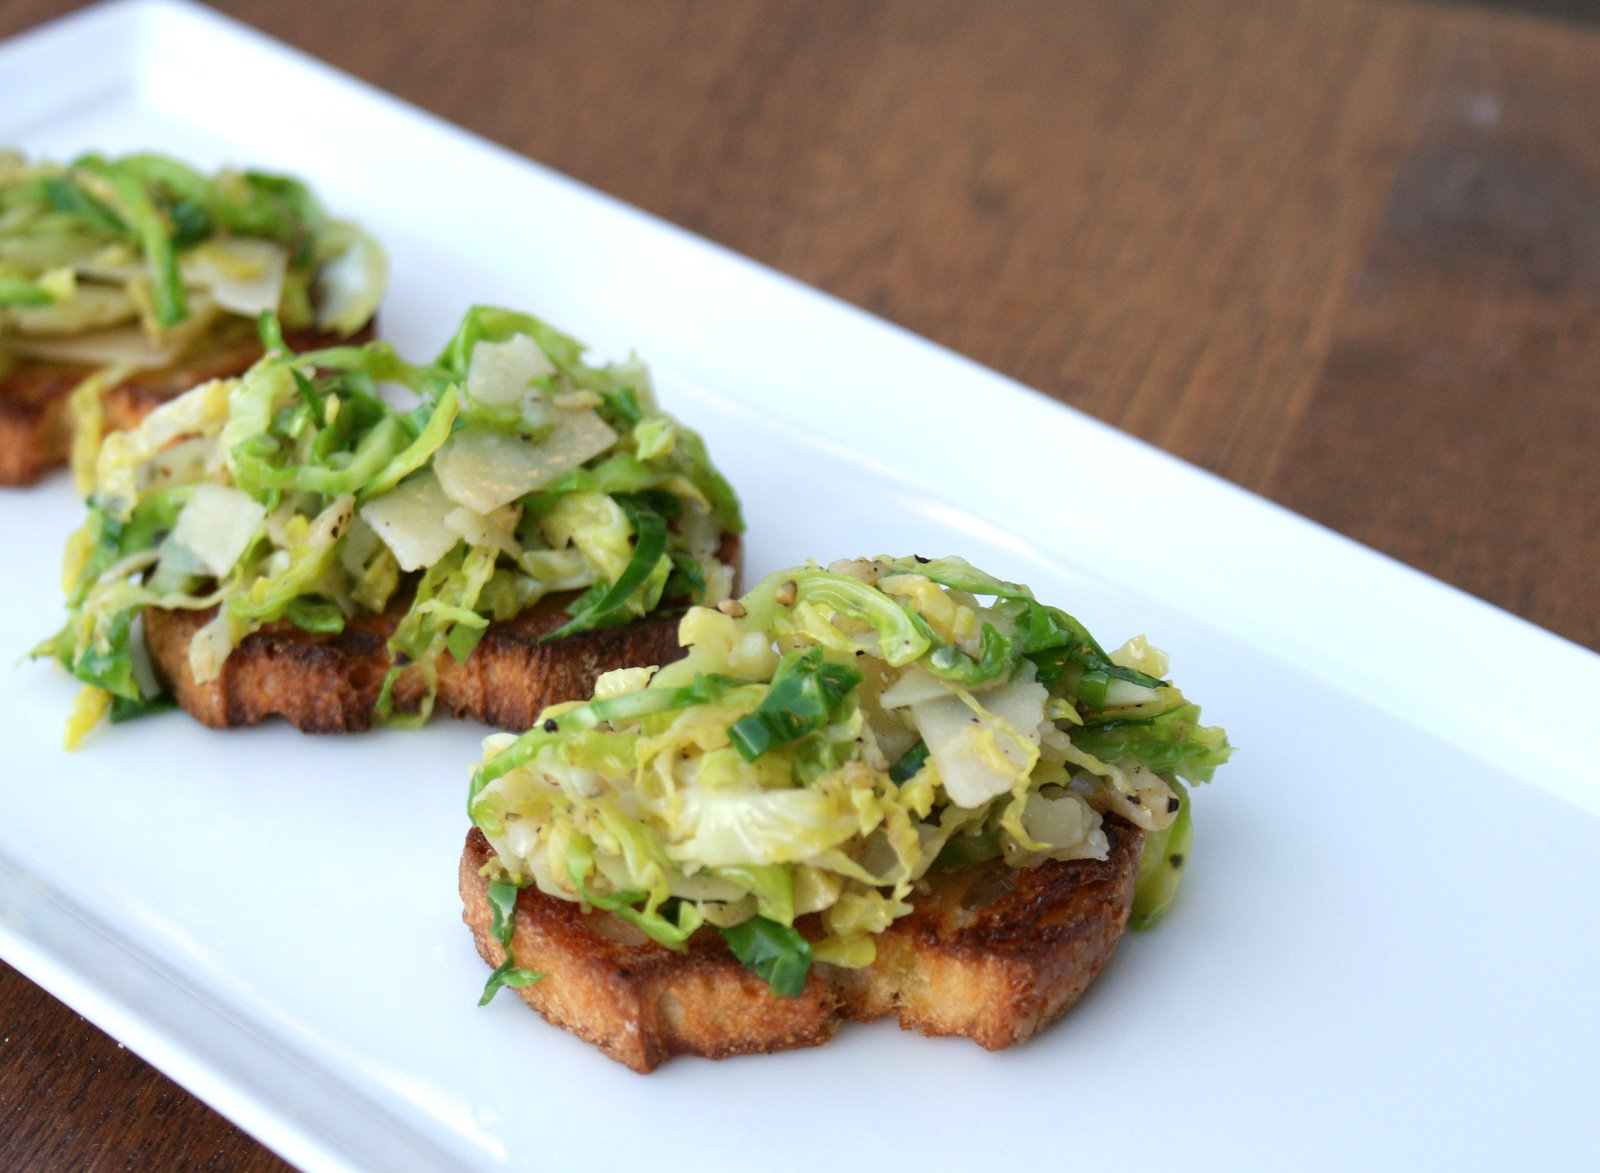 Gourmet brussel sprouts